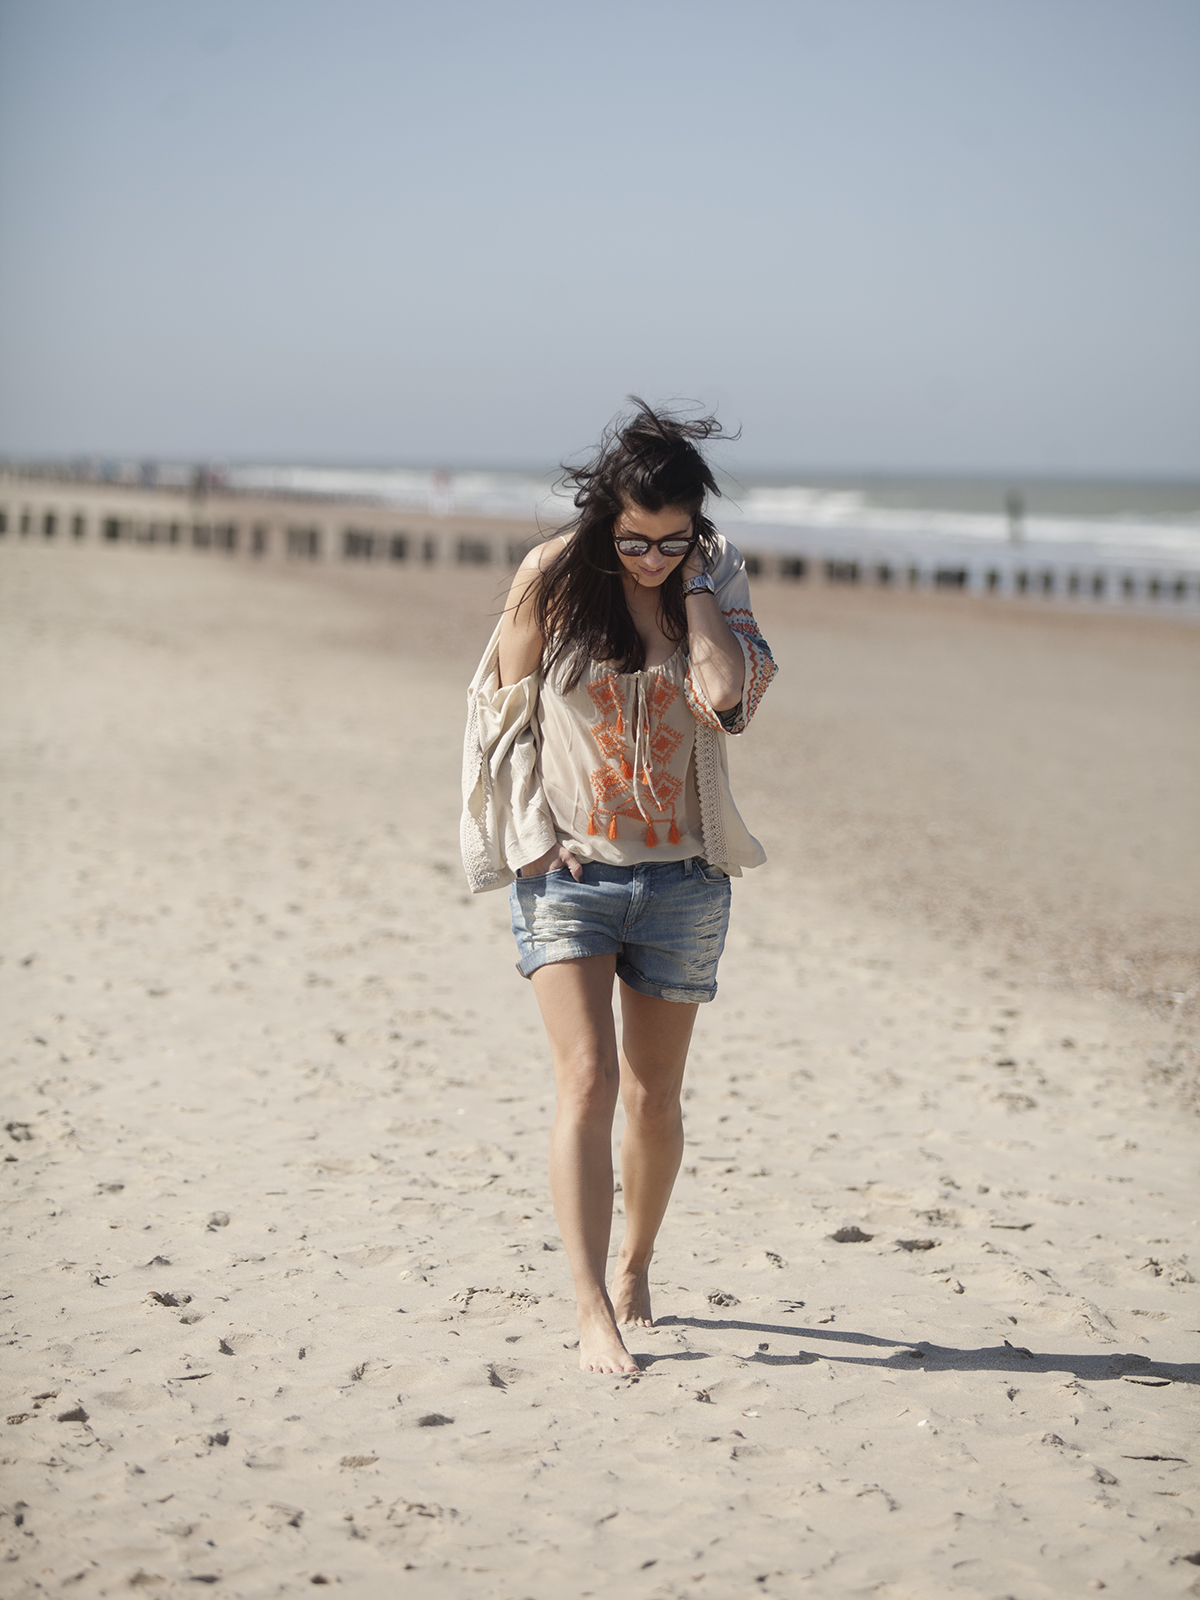 Beach look 2015 www.blogforshops.nl